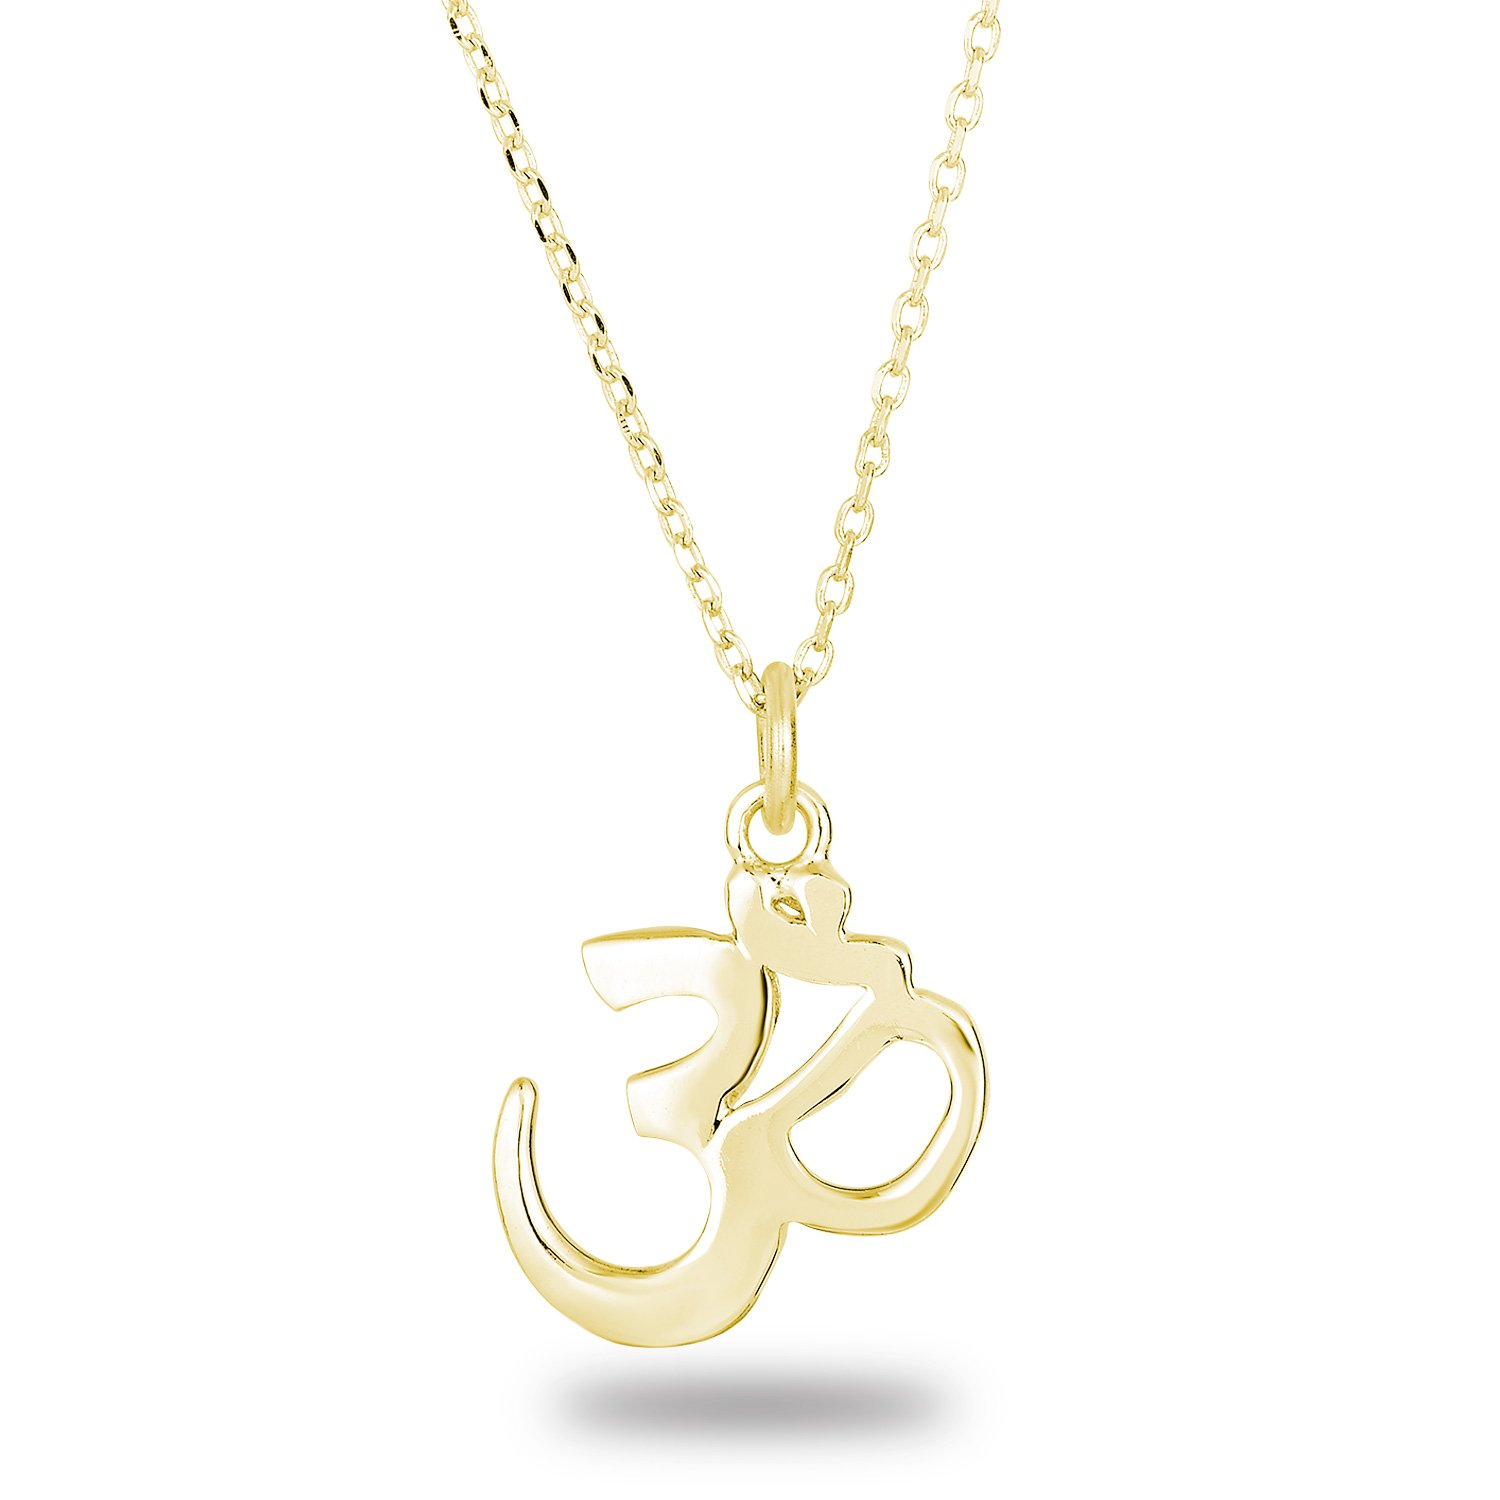 14k Yellow Gold Plated 925 Sterling Silver Plain Finish OHM Om Aum Pendant Necklace, 18\